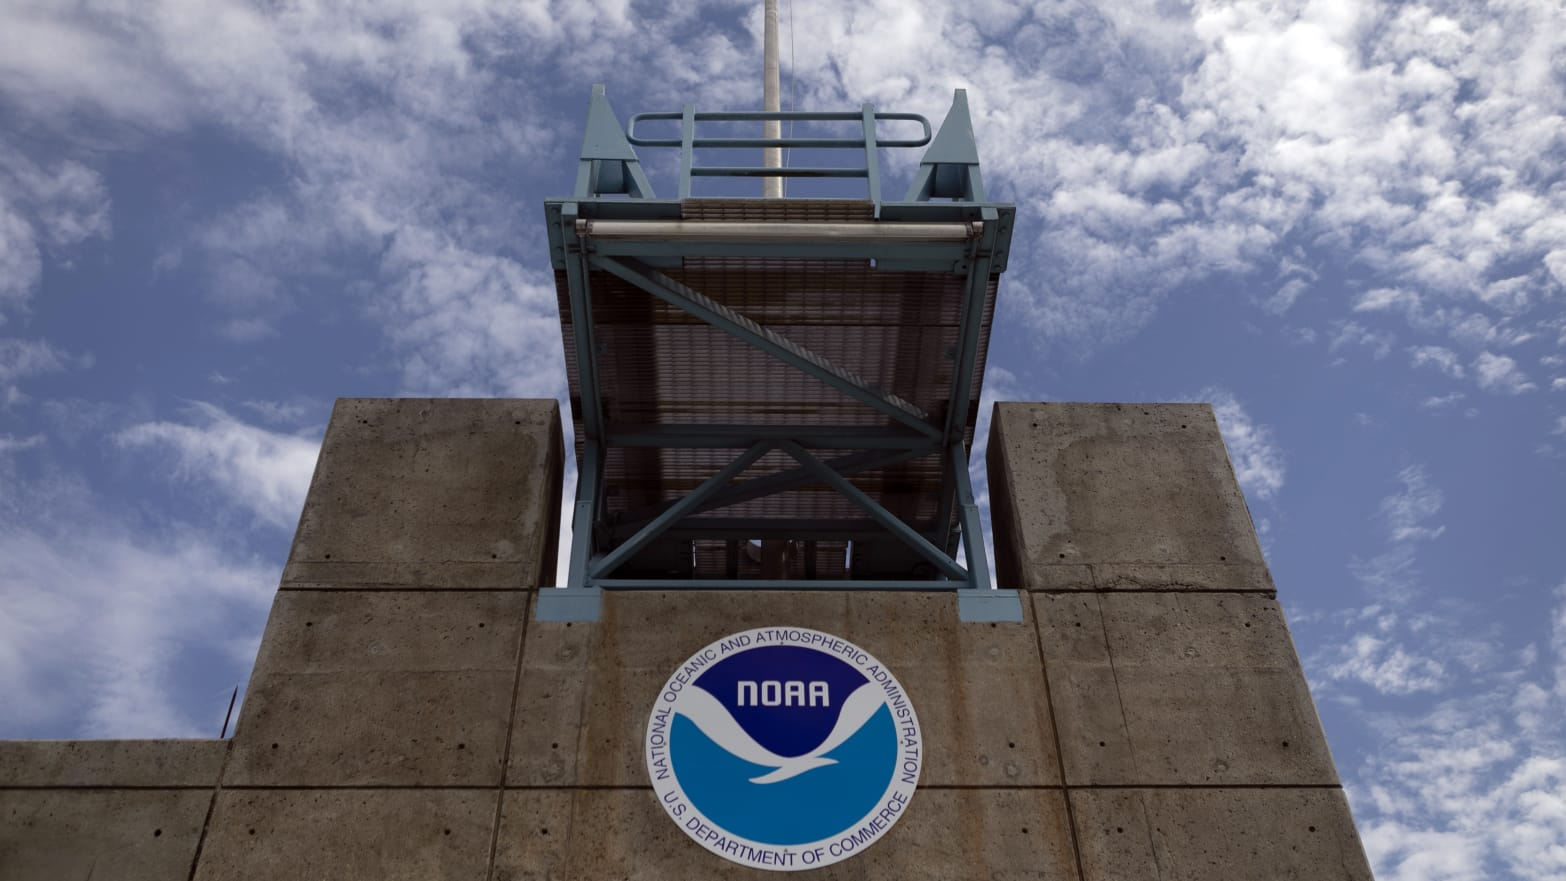 NOAA Left Federal Weather Workers 'Shocked' and 'Irate' by Backing Trump, Union Head Says